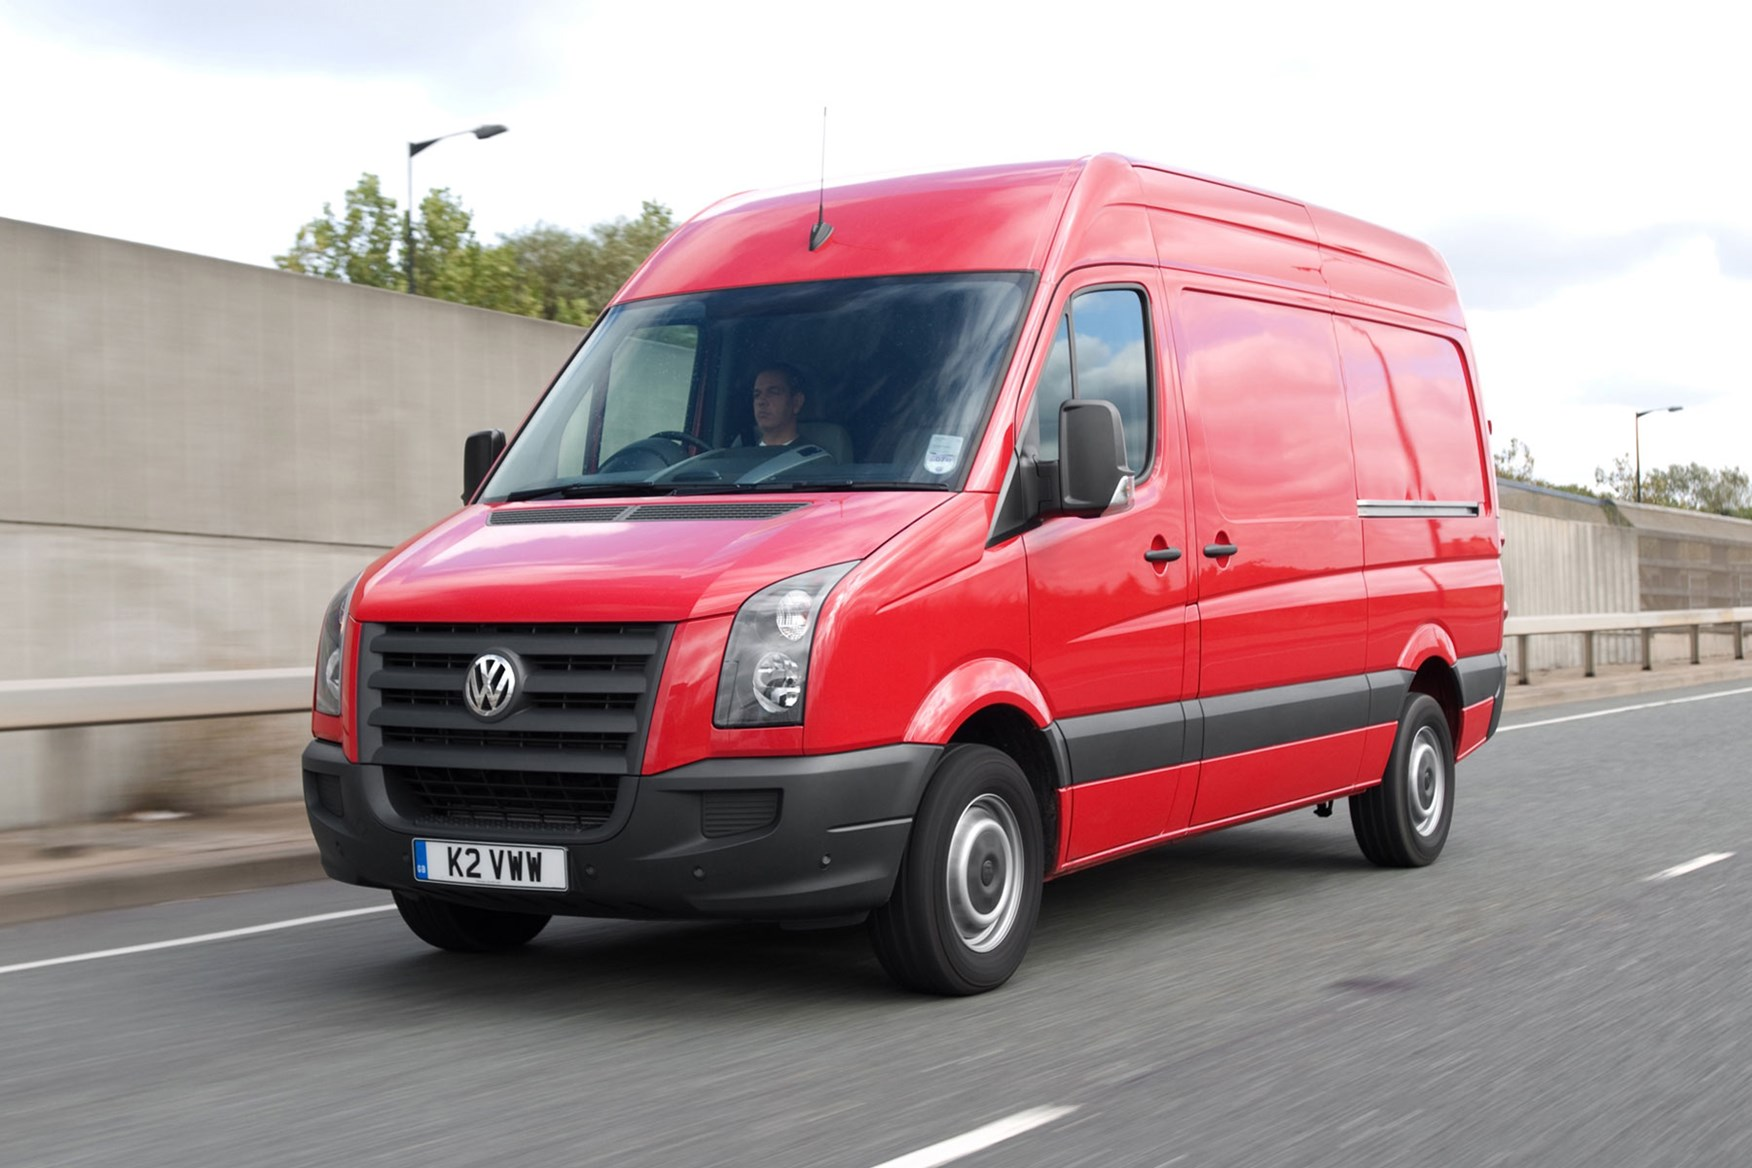 VW Crafter (1996-2003) driving experience